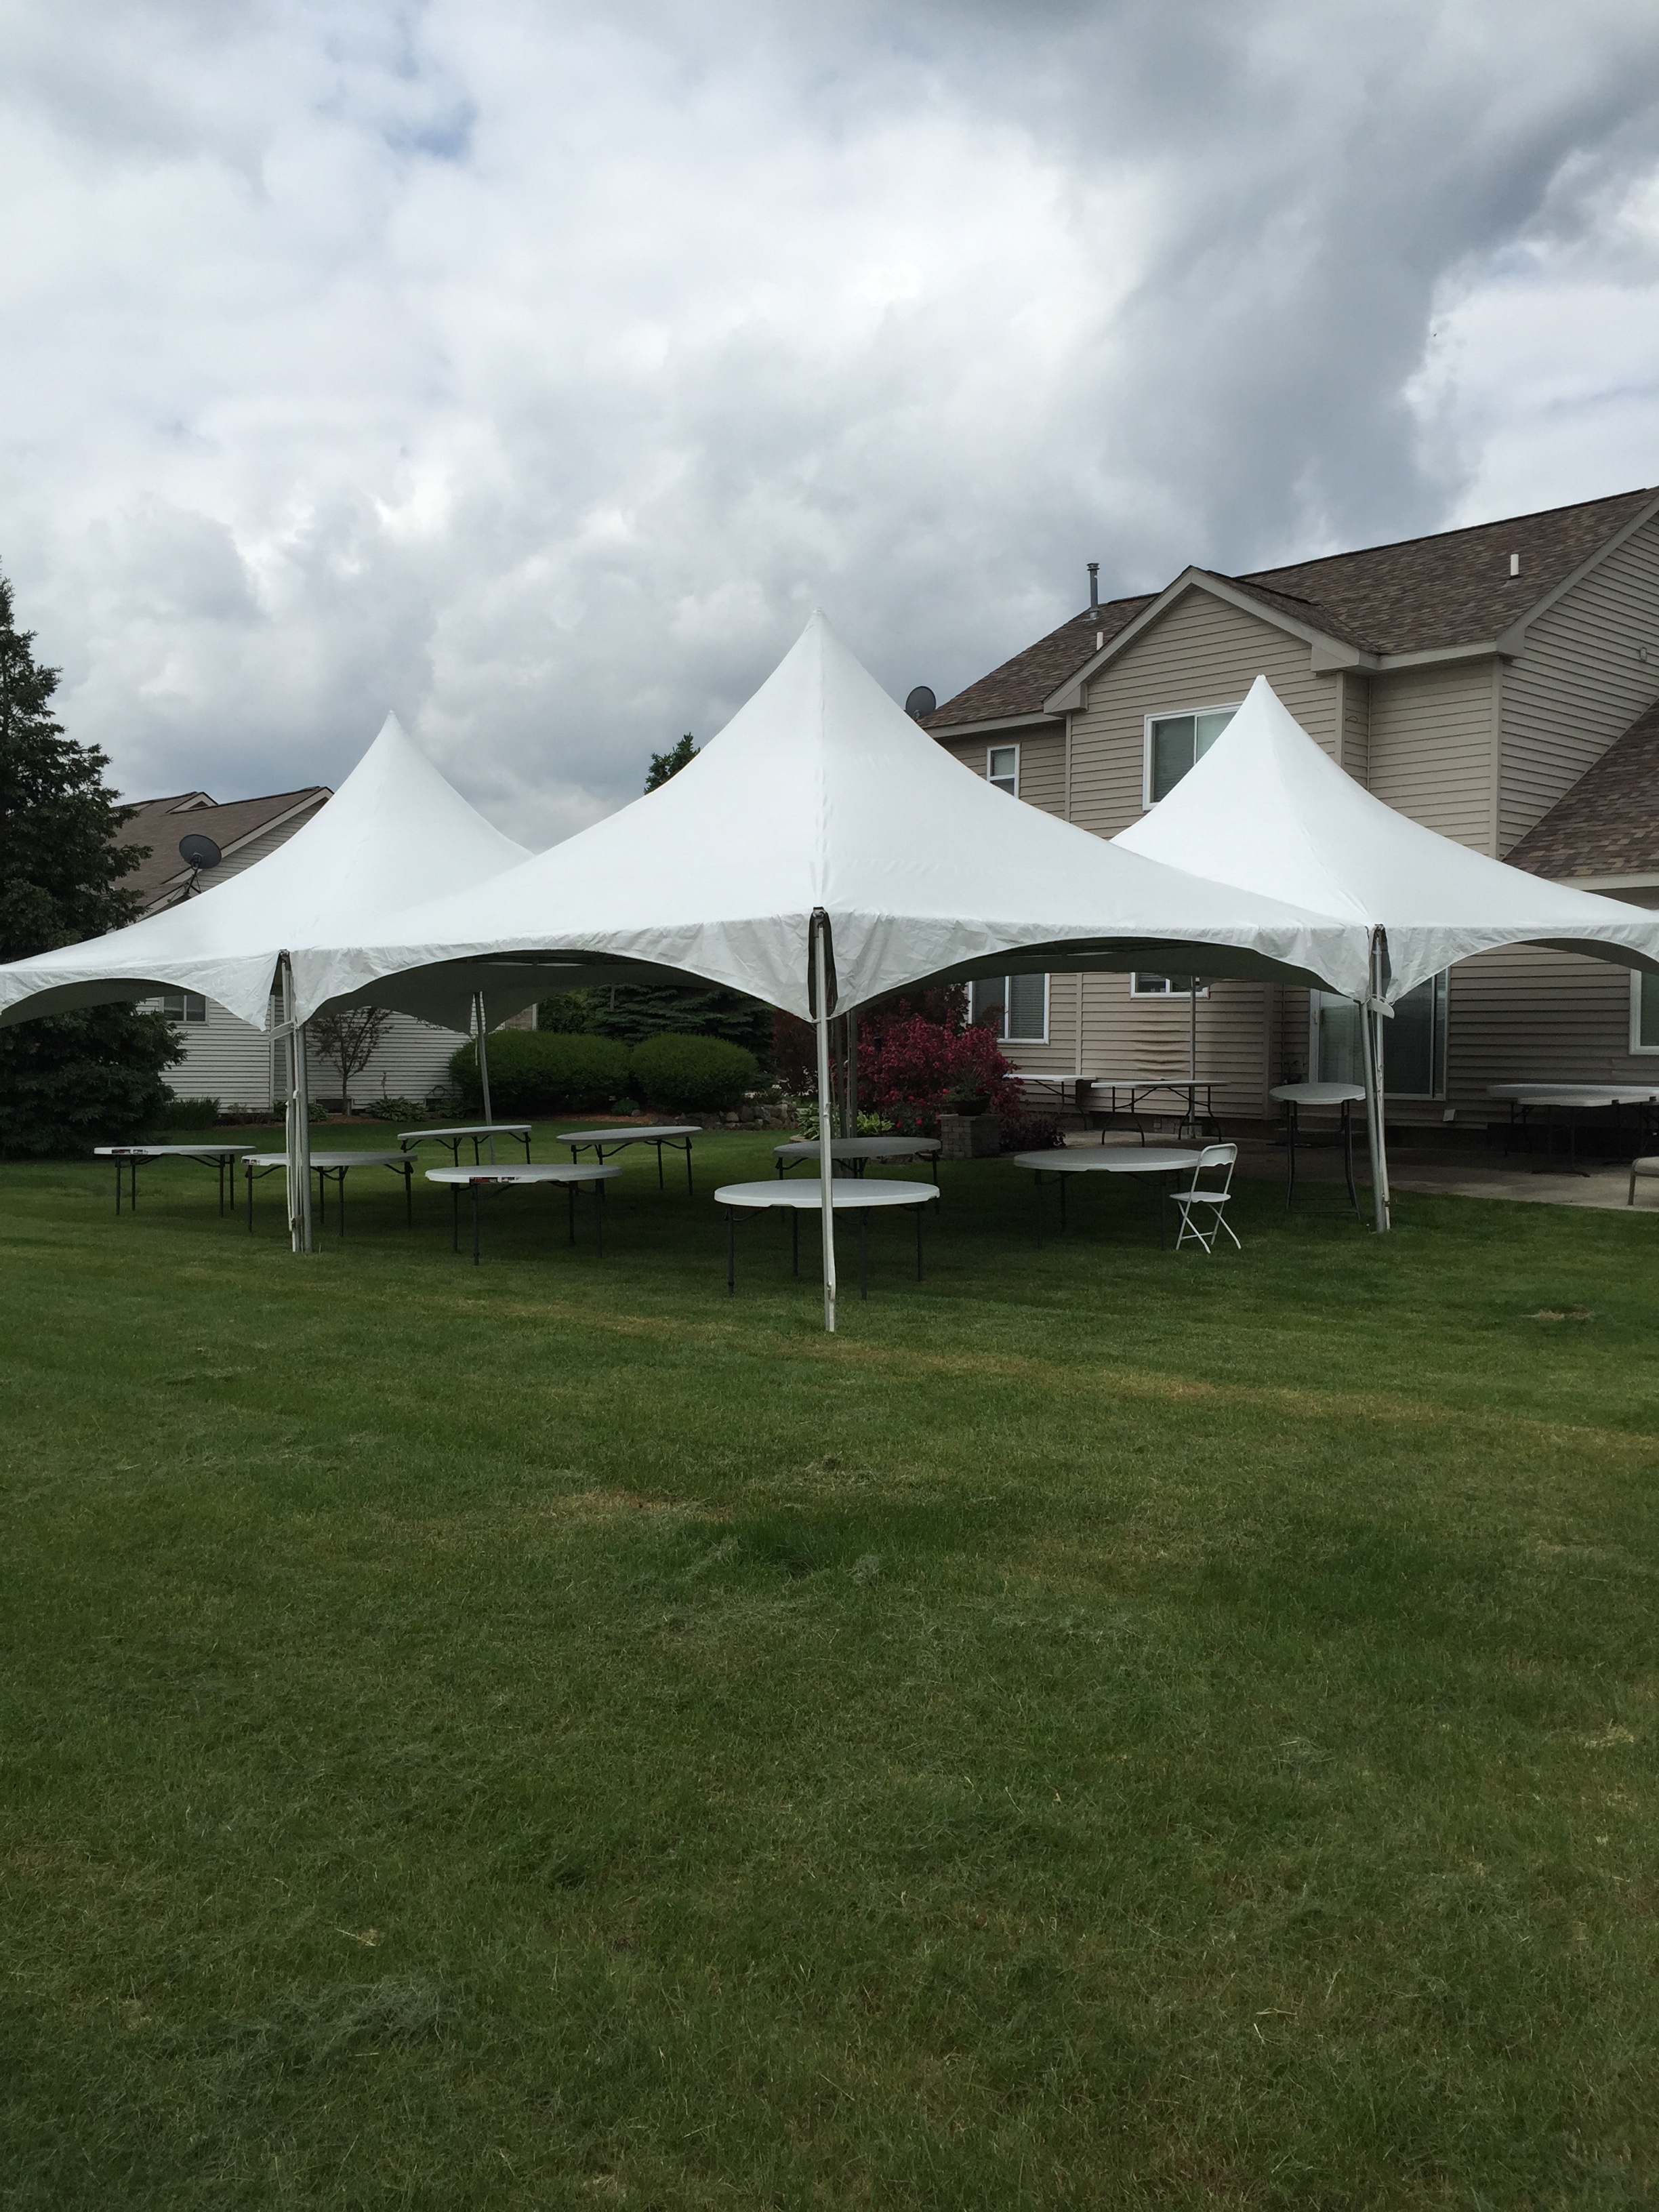 20×60 frame tent & 20x60 frame tent - Rent A Bounce